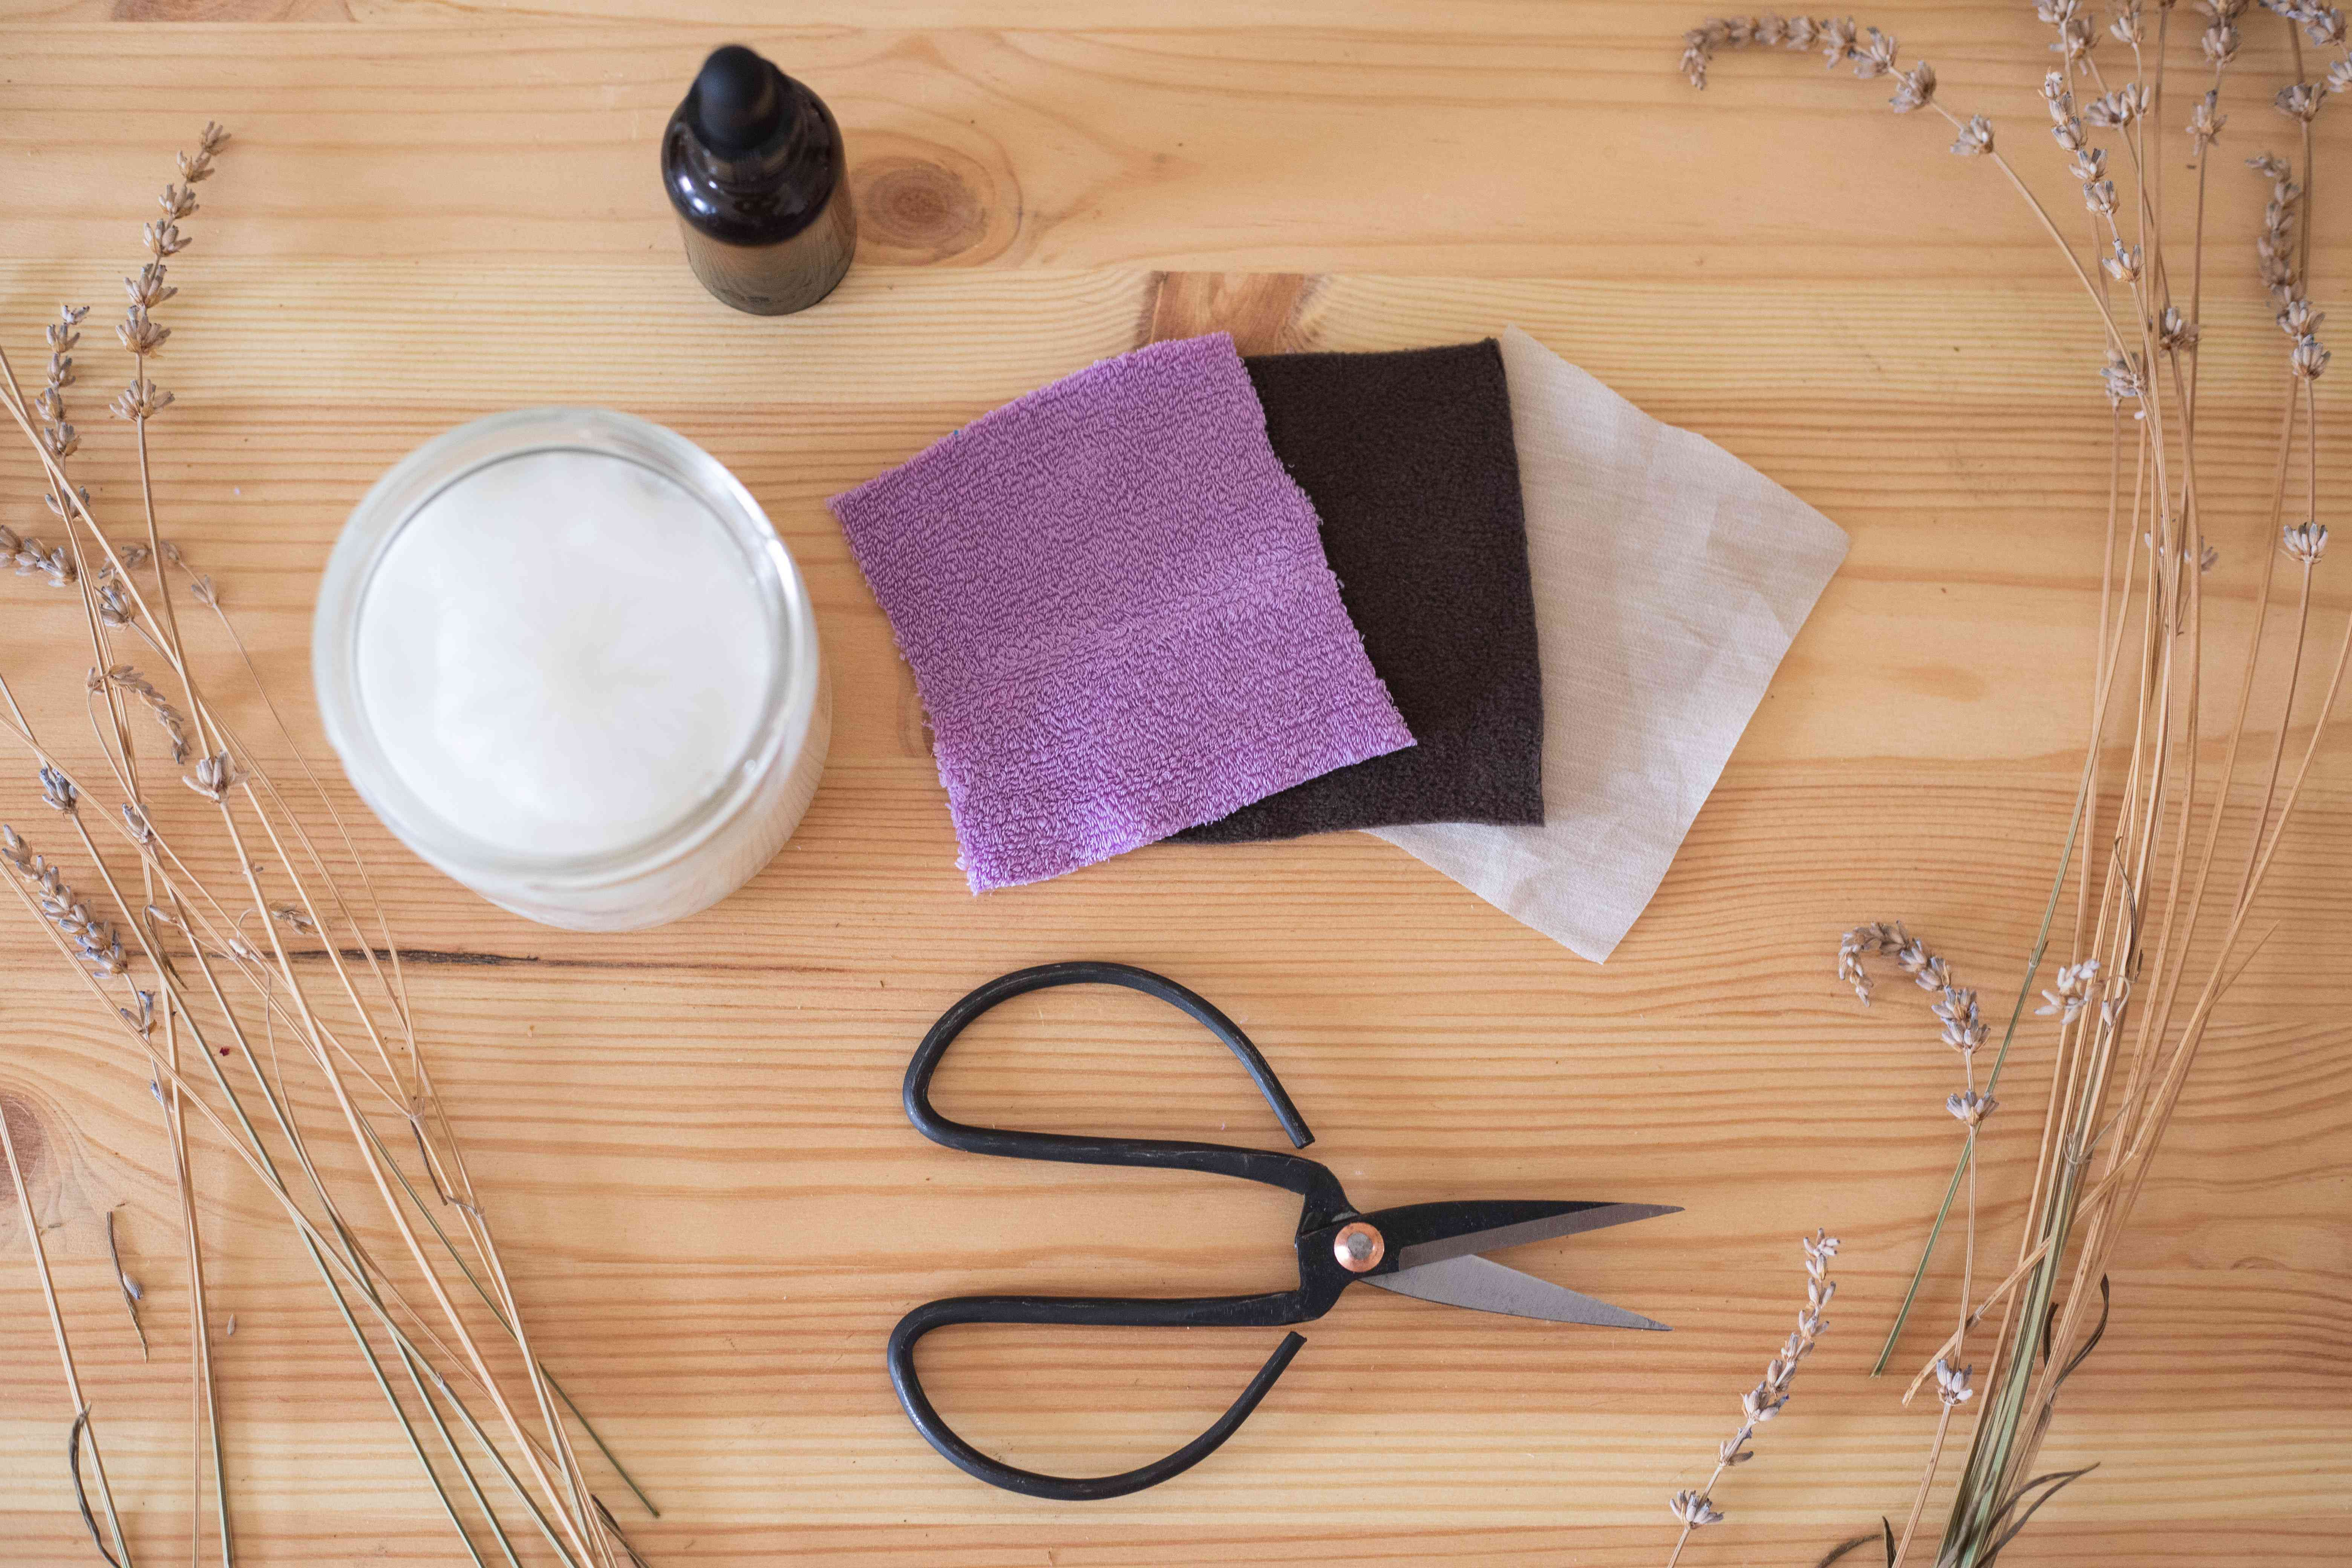 flat lay of zero waste beauty with felt cloth makeup removers, scissors, and coconut oil